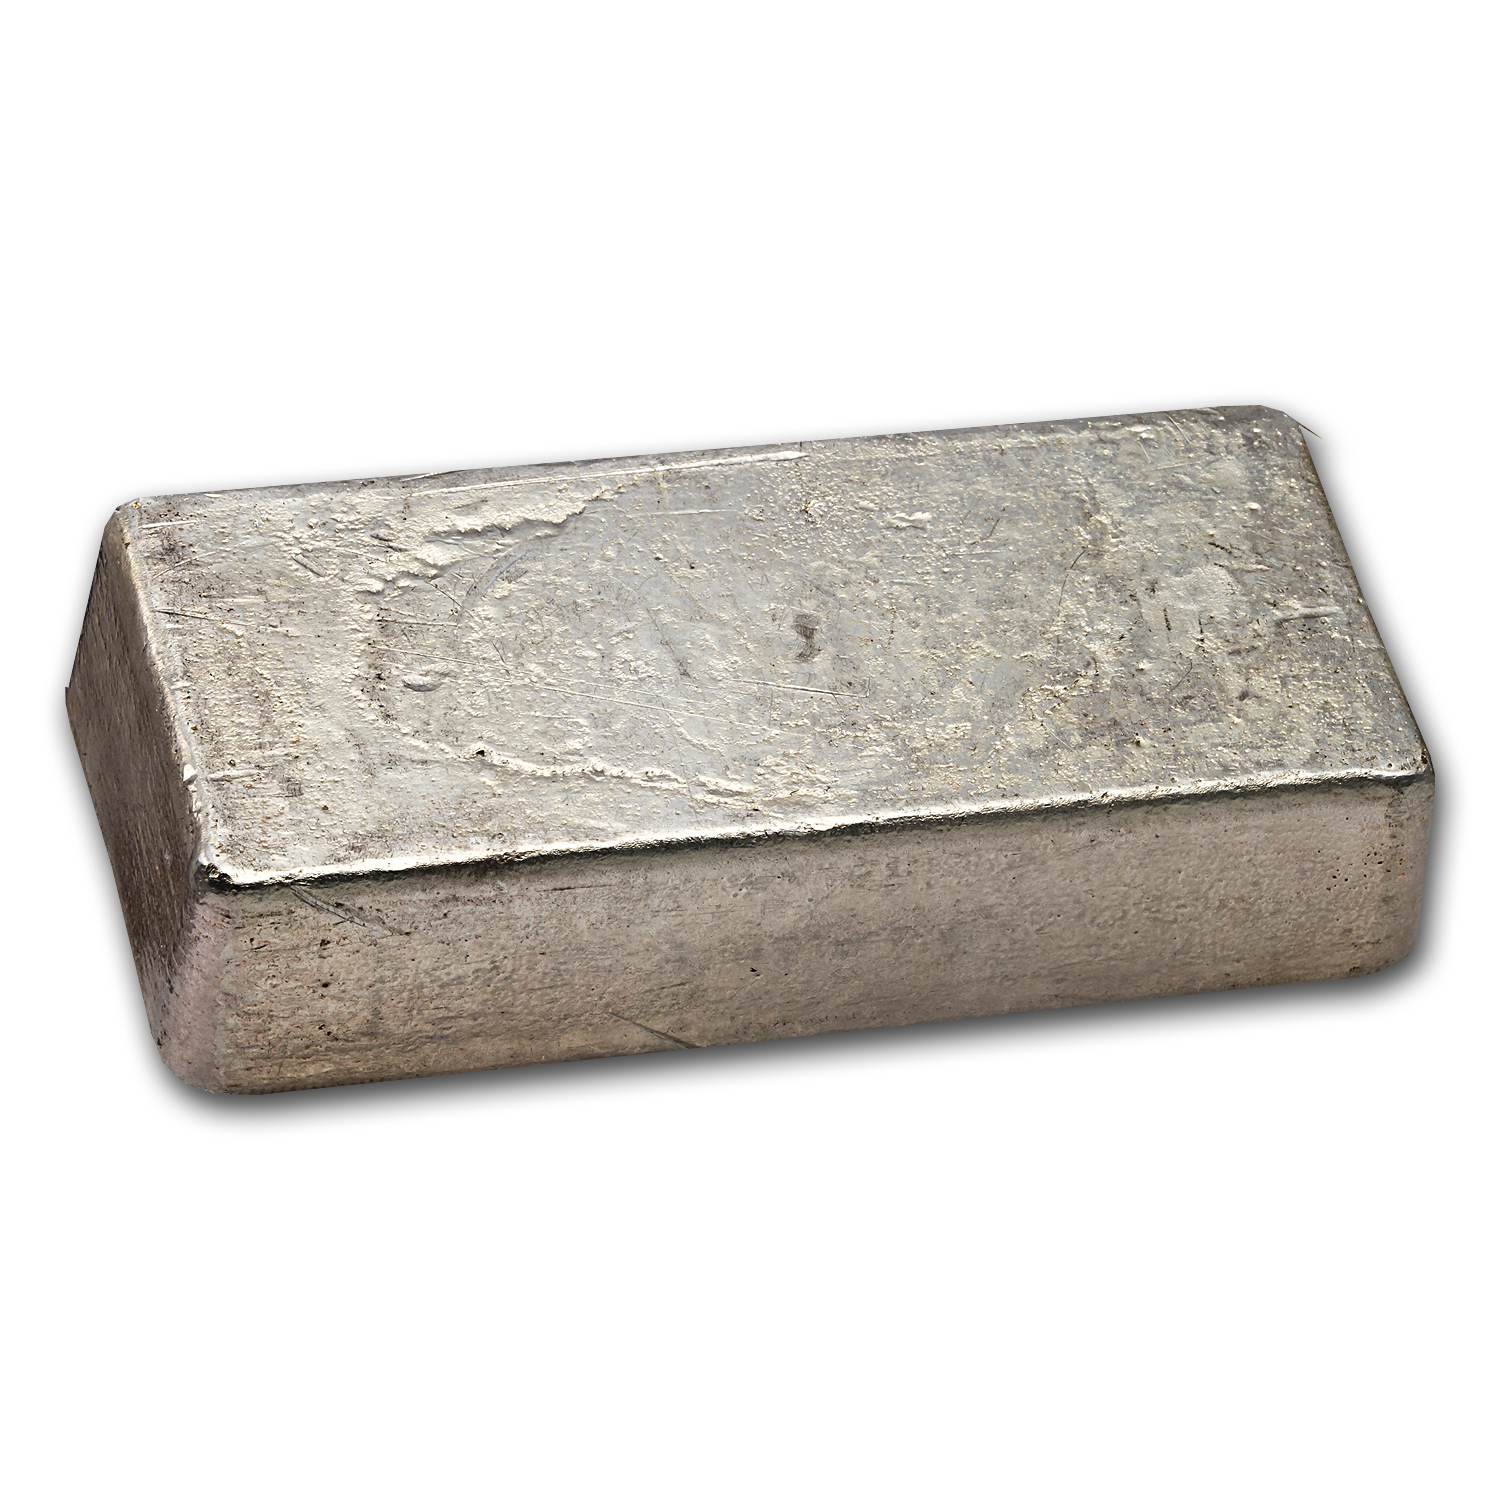 50 oz Silver Bars - Engelhard (Poured/Bull Logo)